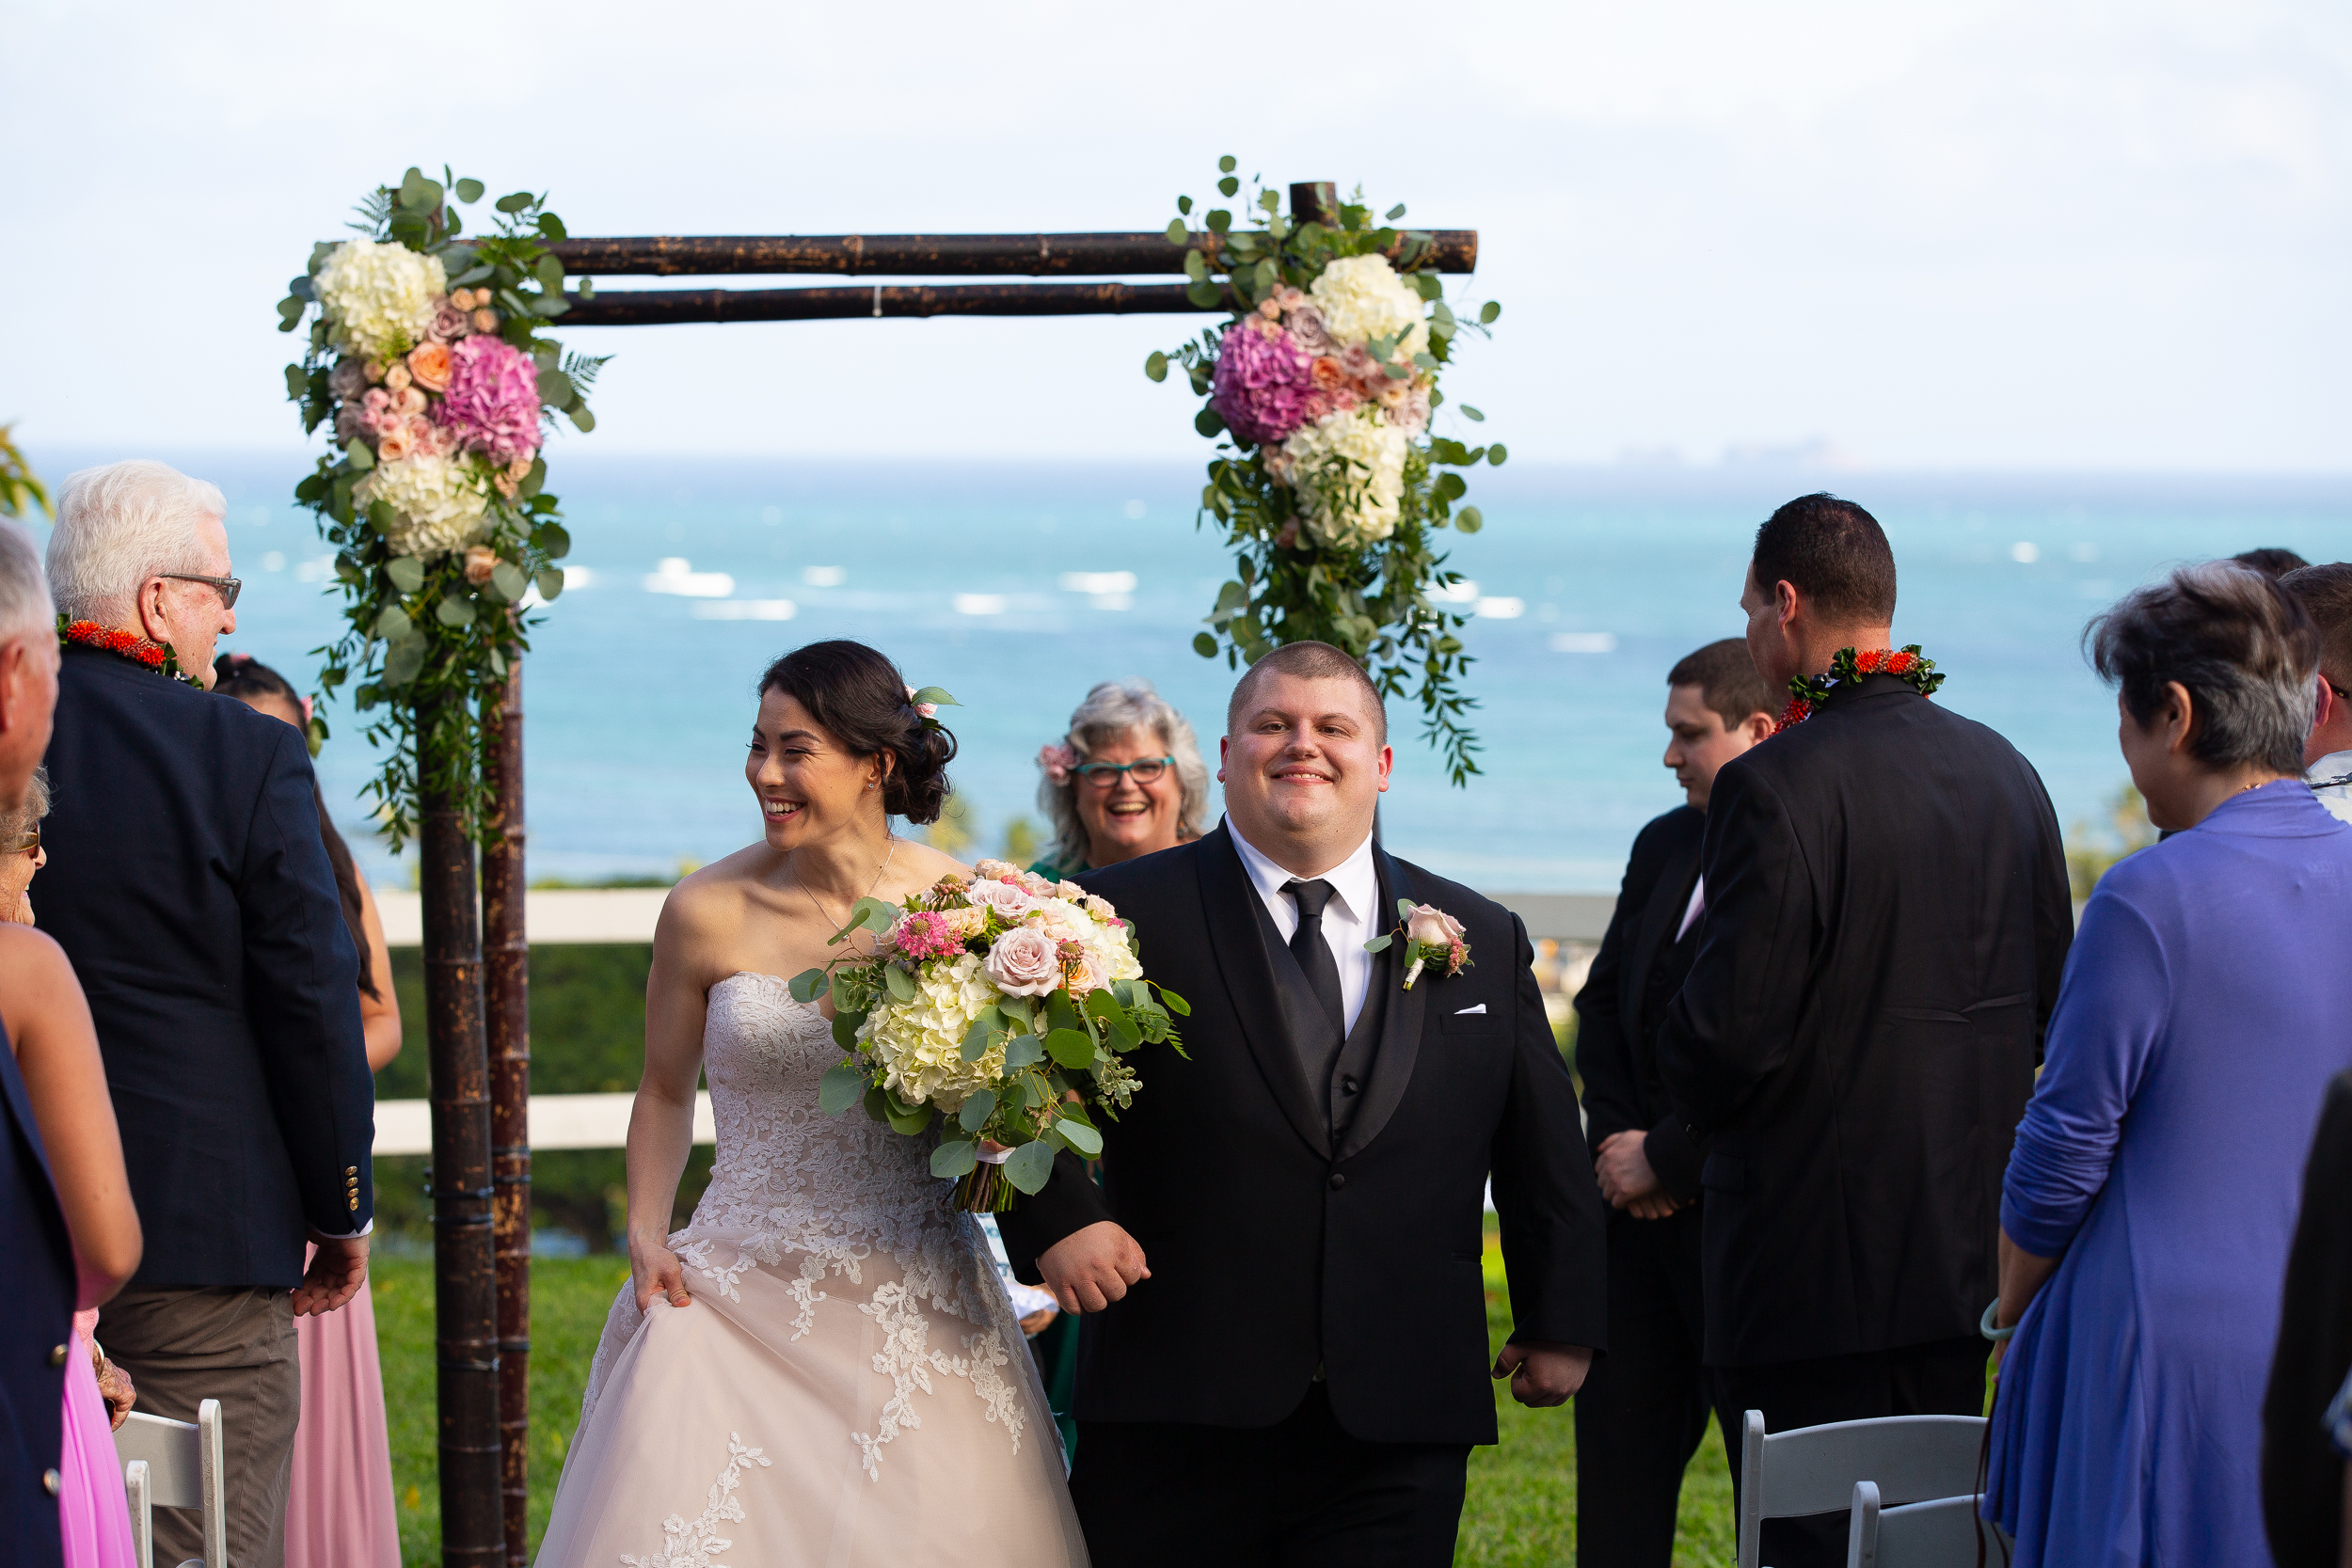 Kualoa Ranch Wedding in Hawaii -49.jpg